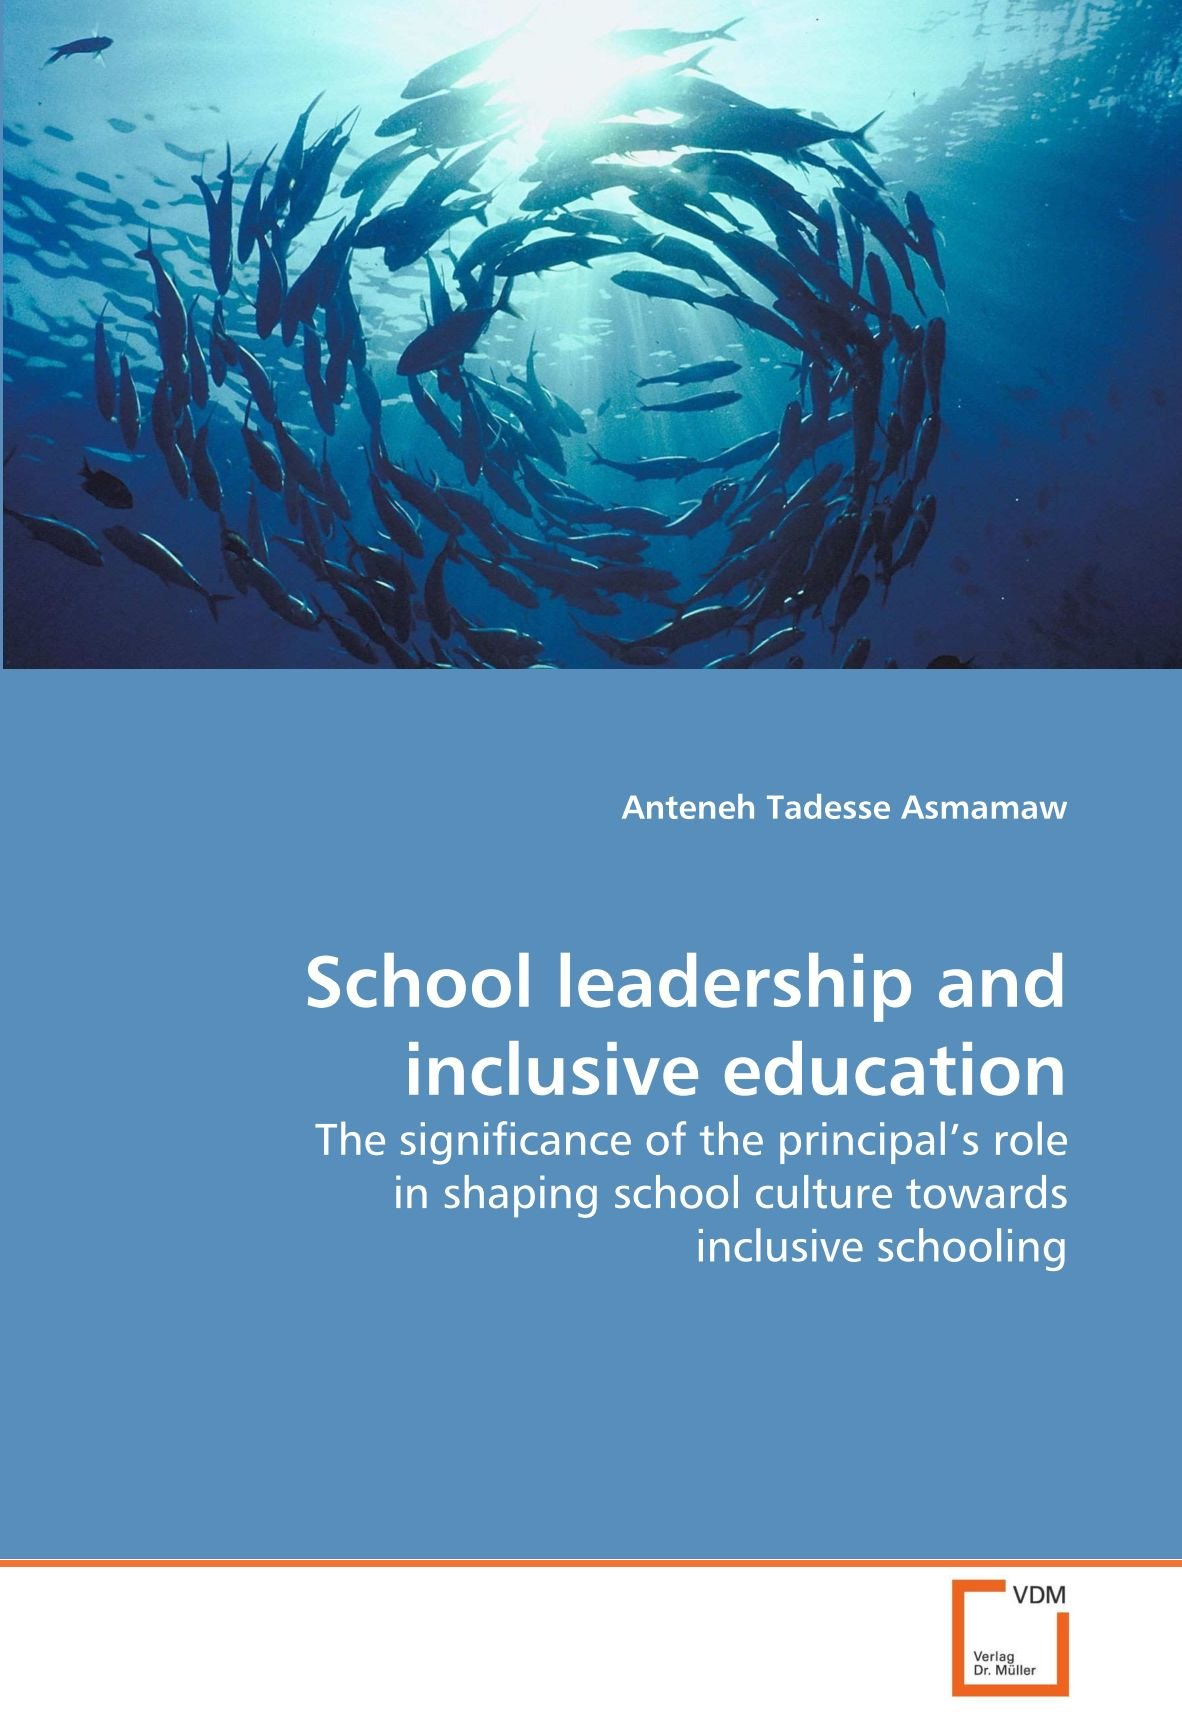 Download School leadership and inclusive education: The significance of the principal's role in shaping school culture towards inclusive schooling PDF